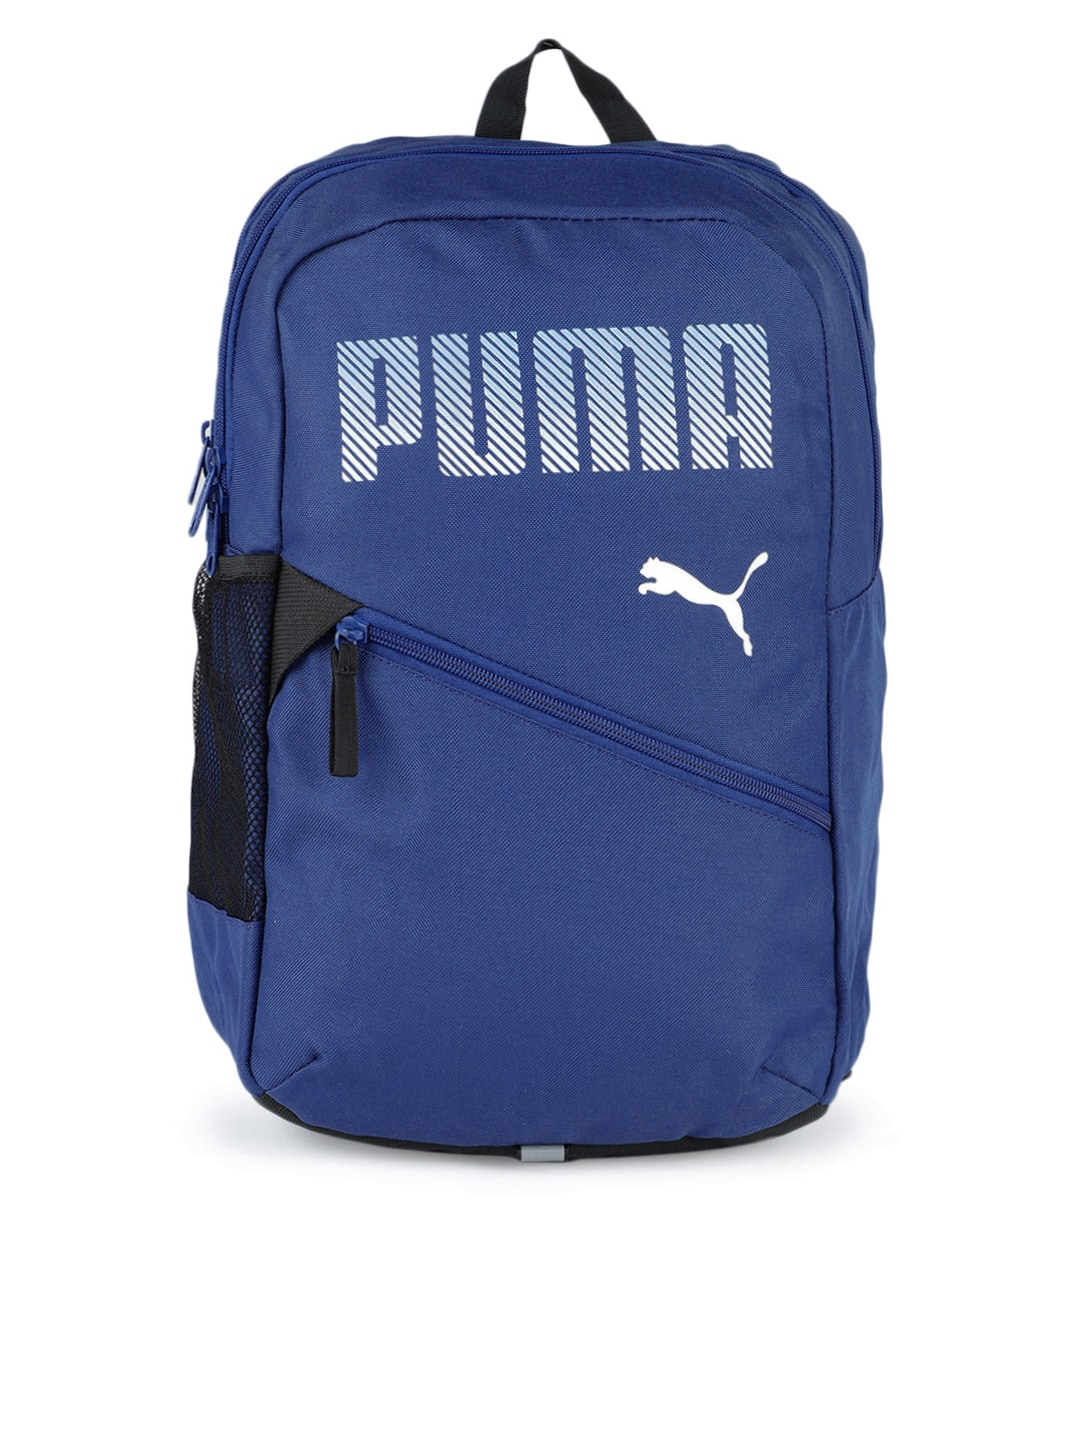 Puma Bags In Men Backpacks - Buy Puma Bags In Men Backpacks online in India 8043017ffcb37